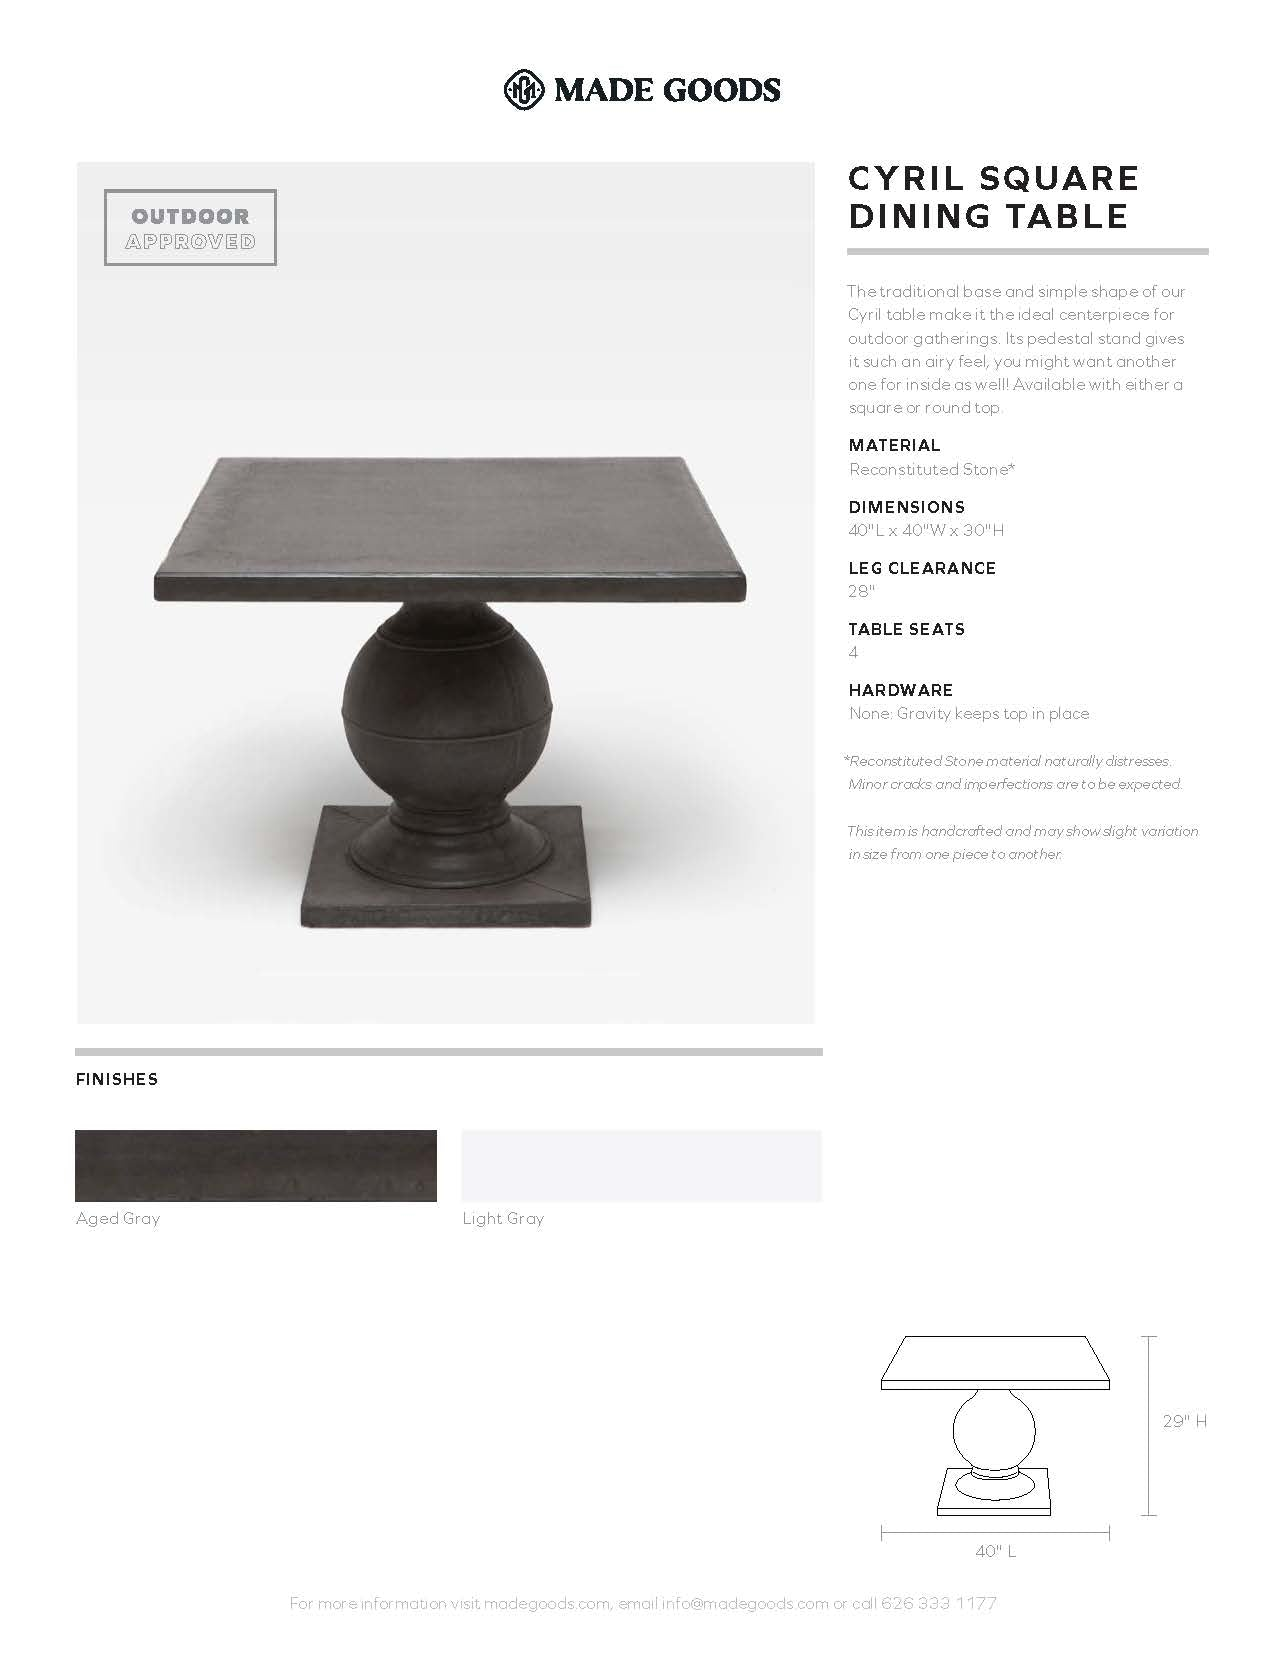 Made Goods Cyril Square Dining Table Tearsheet